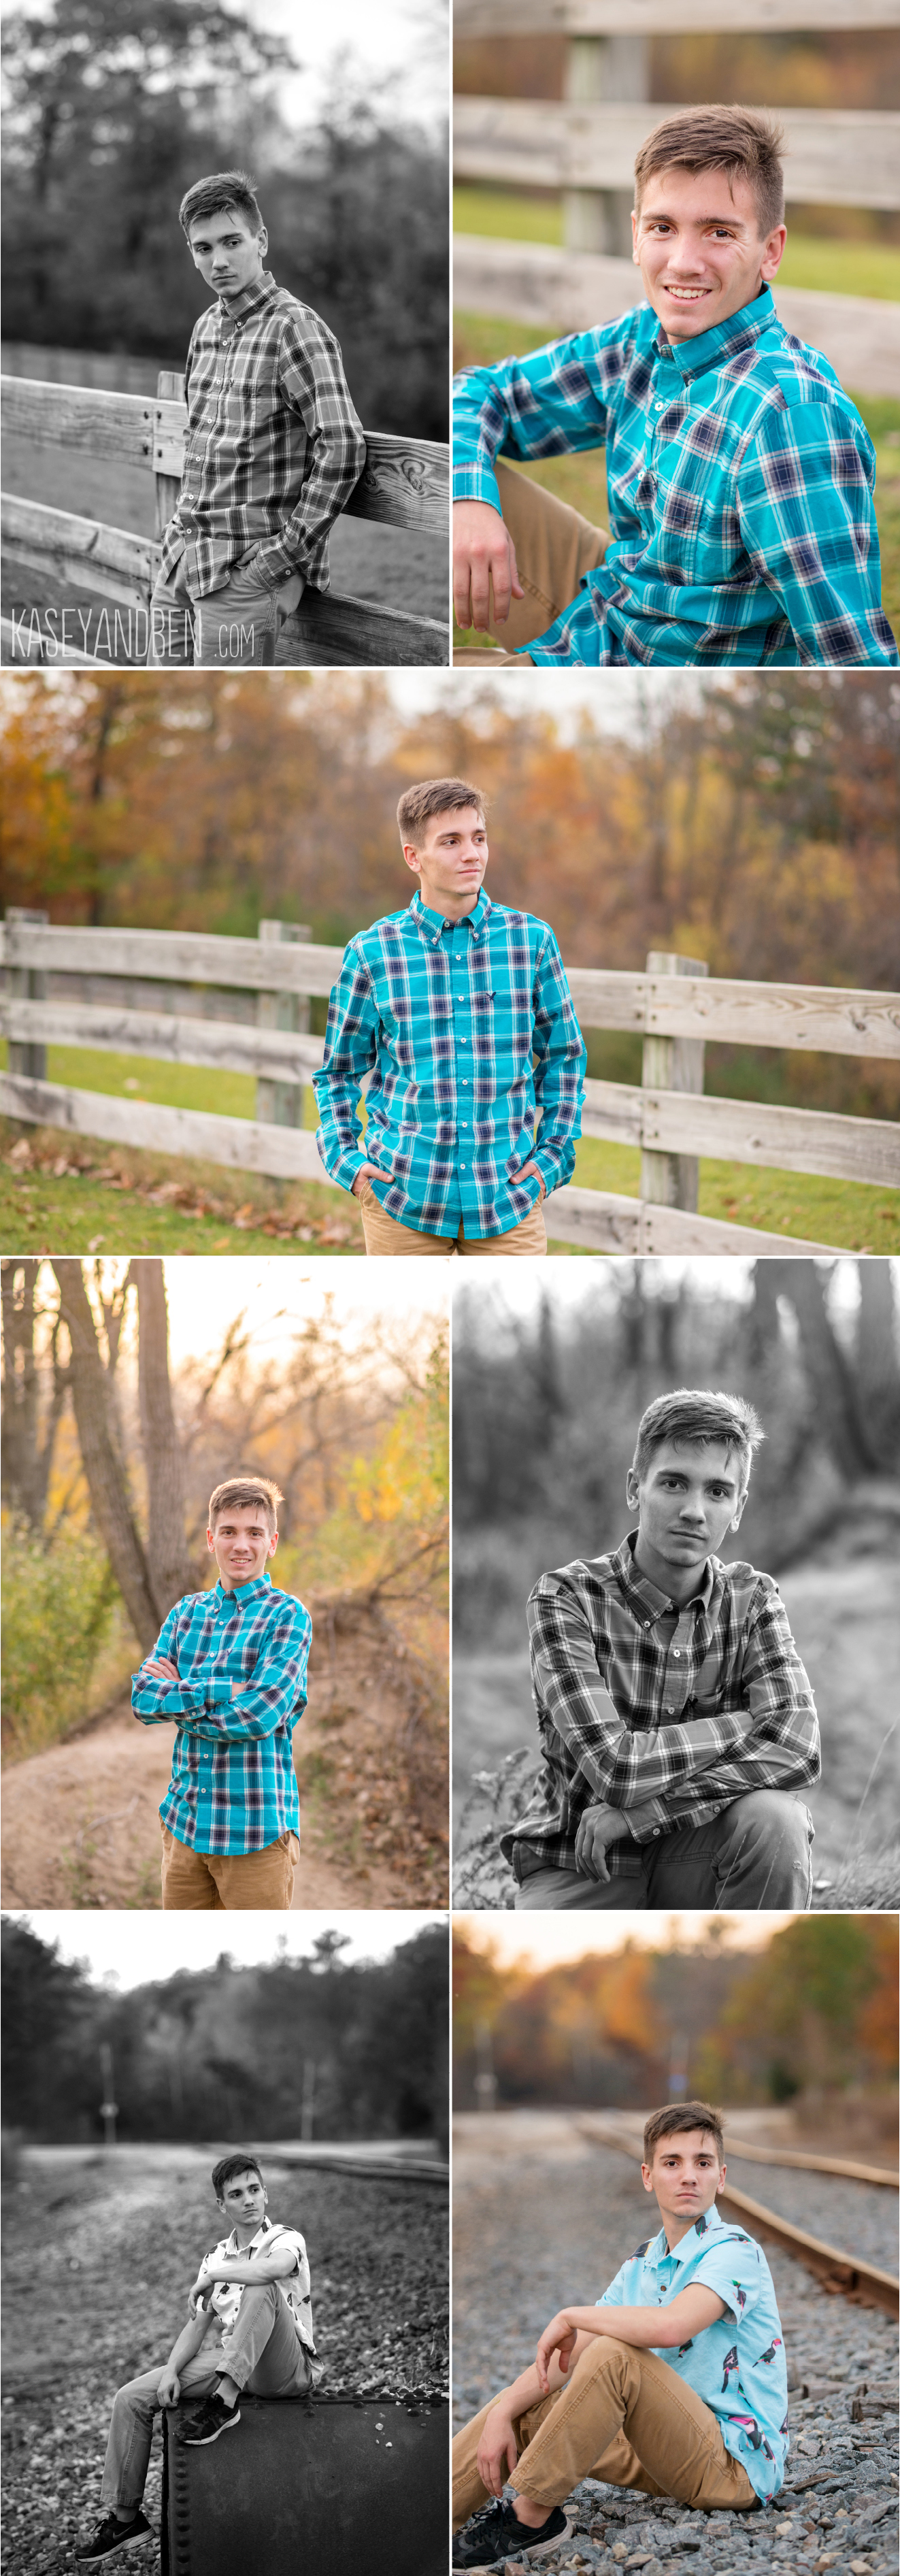 Green-Bay-Bairds-Creek-Senior-Photos-Photographer-East-High-School-Senior-Portraits-Fall-Autumn-Woods